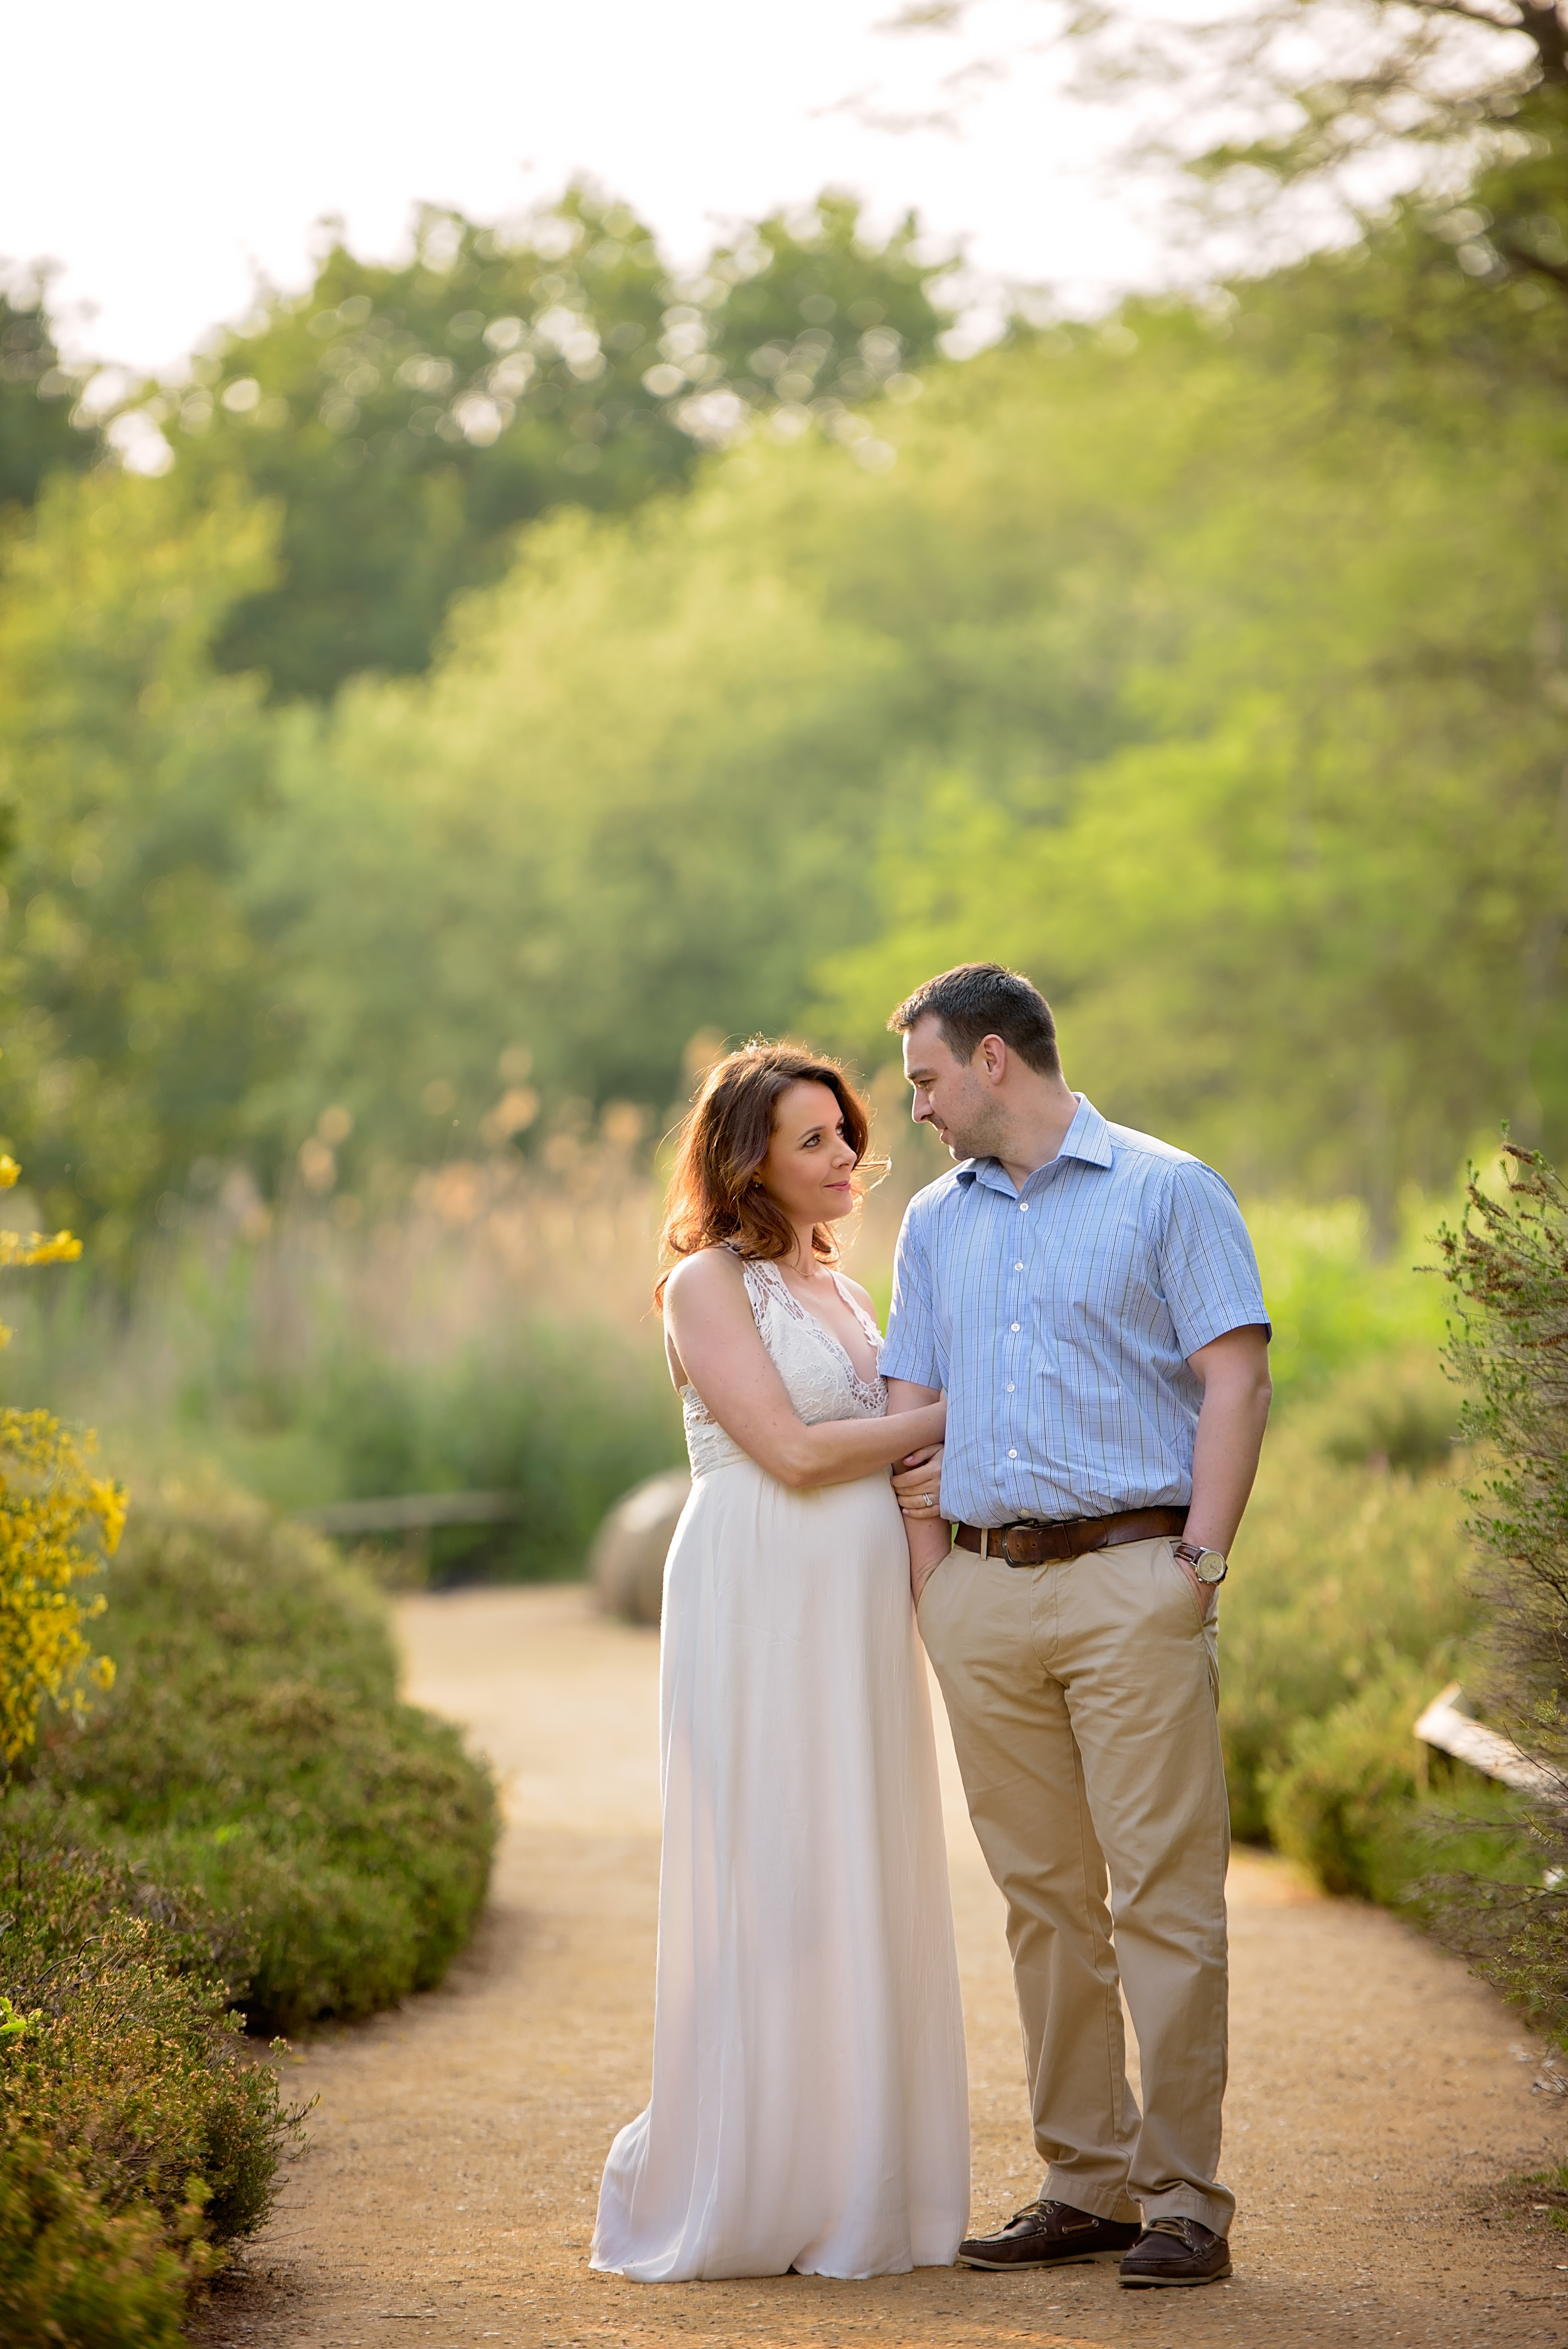 London outdoor maternity photography